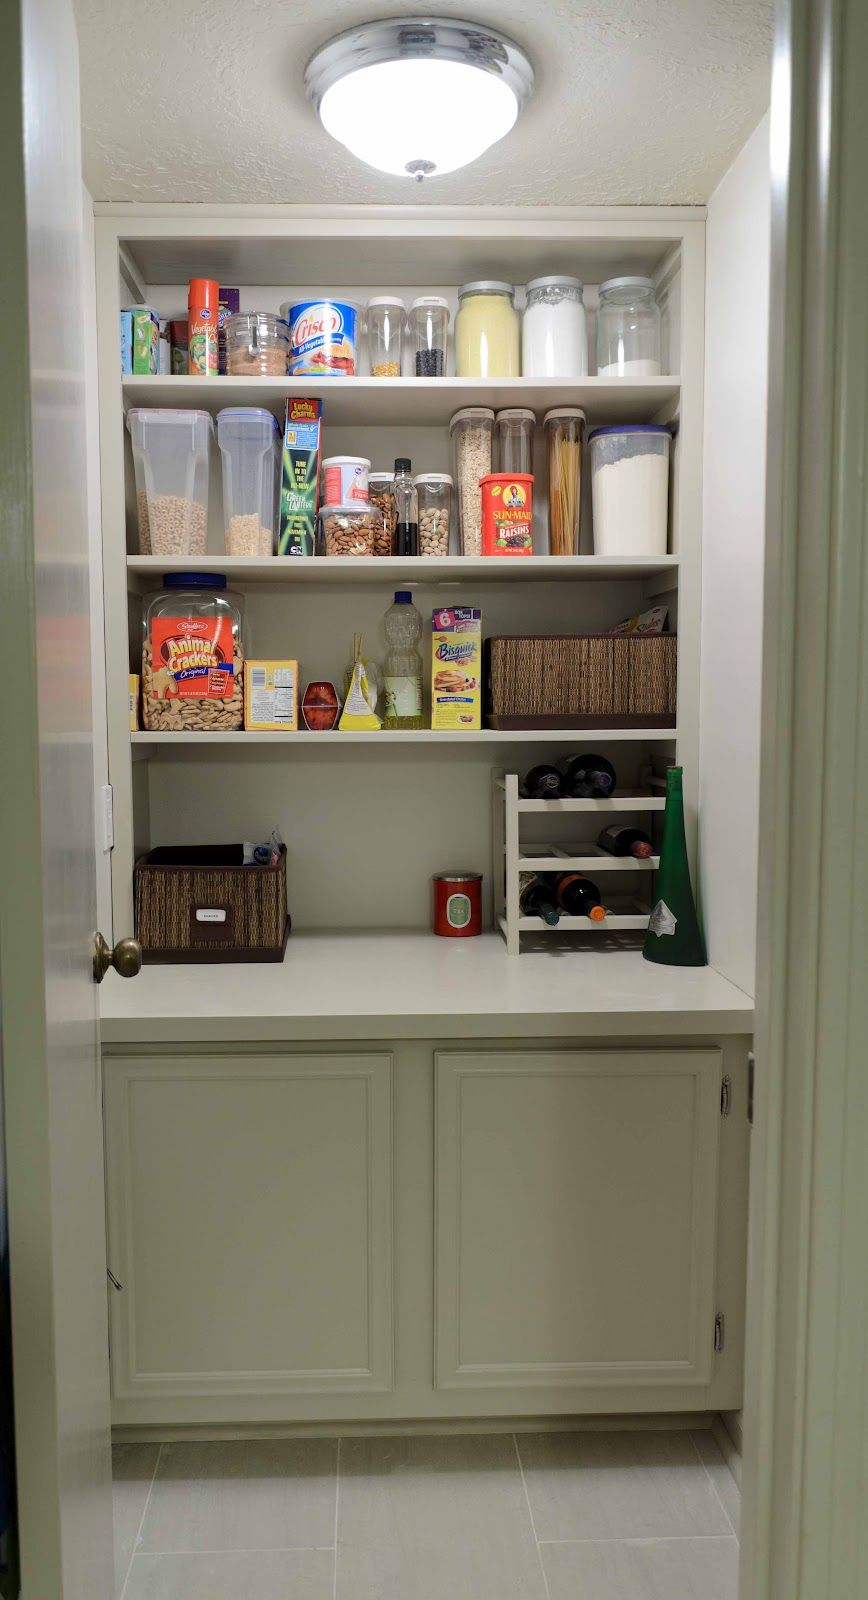 Simply White Pantry Cabinet Ideas With Small E Design Plus Elegant Kitchen For Comfortbydesign